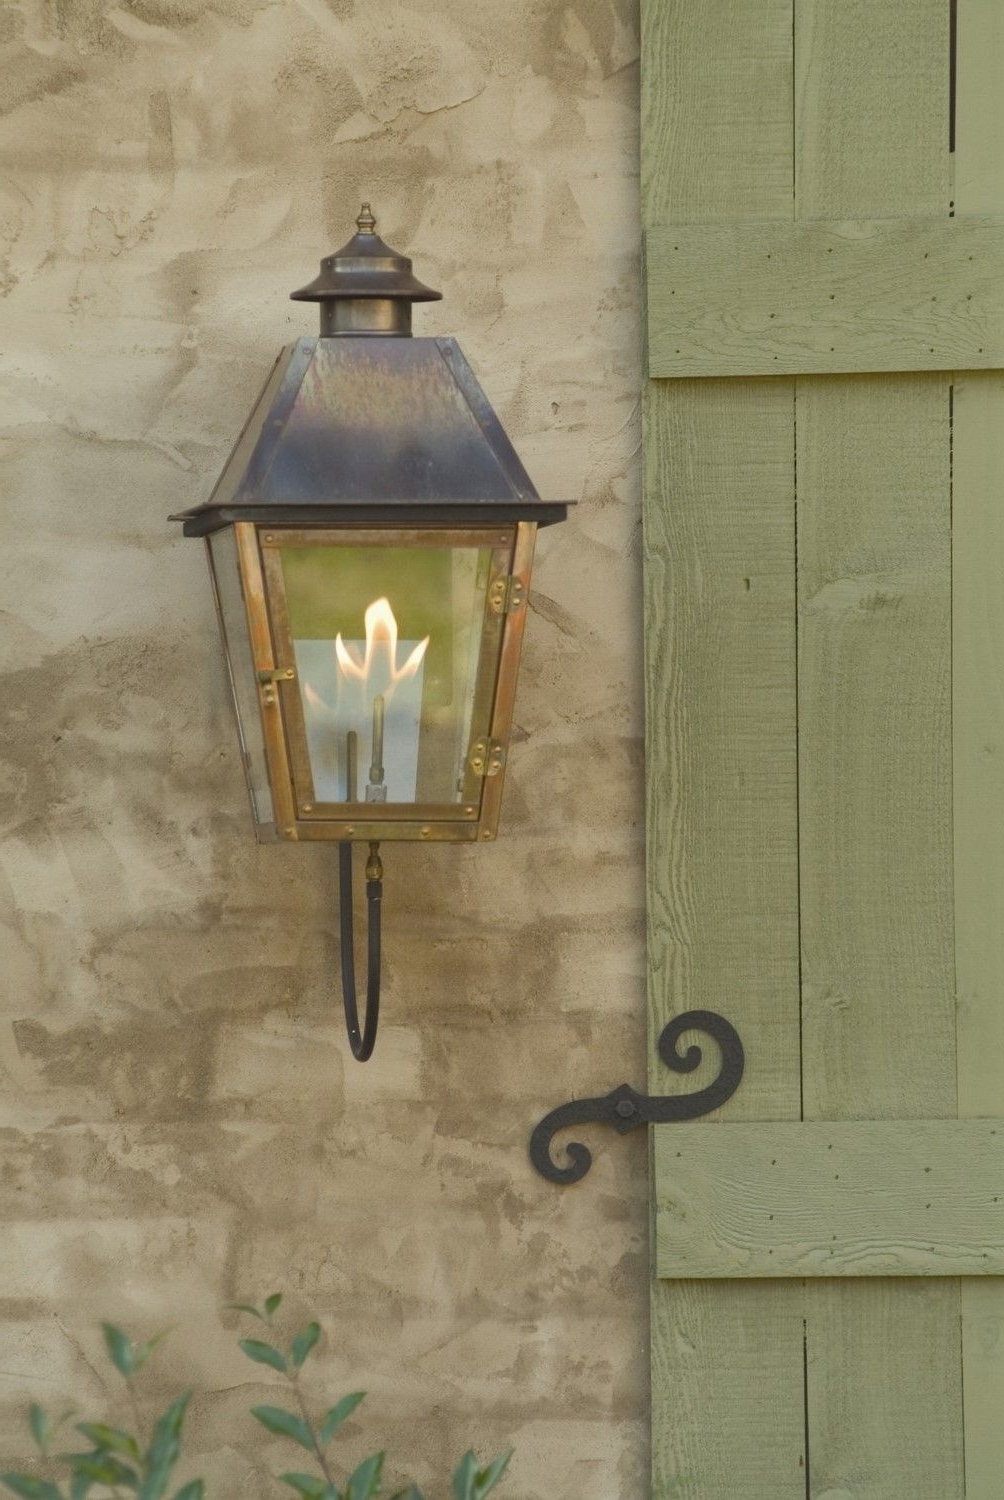 Outdoor Gas Lanterns For Recent Carolina Lanterns Gas Lamp Atlas Wall Mount (Gallery 5 of 20)